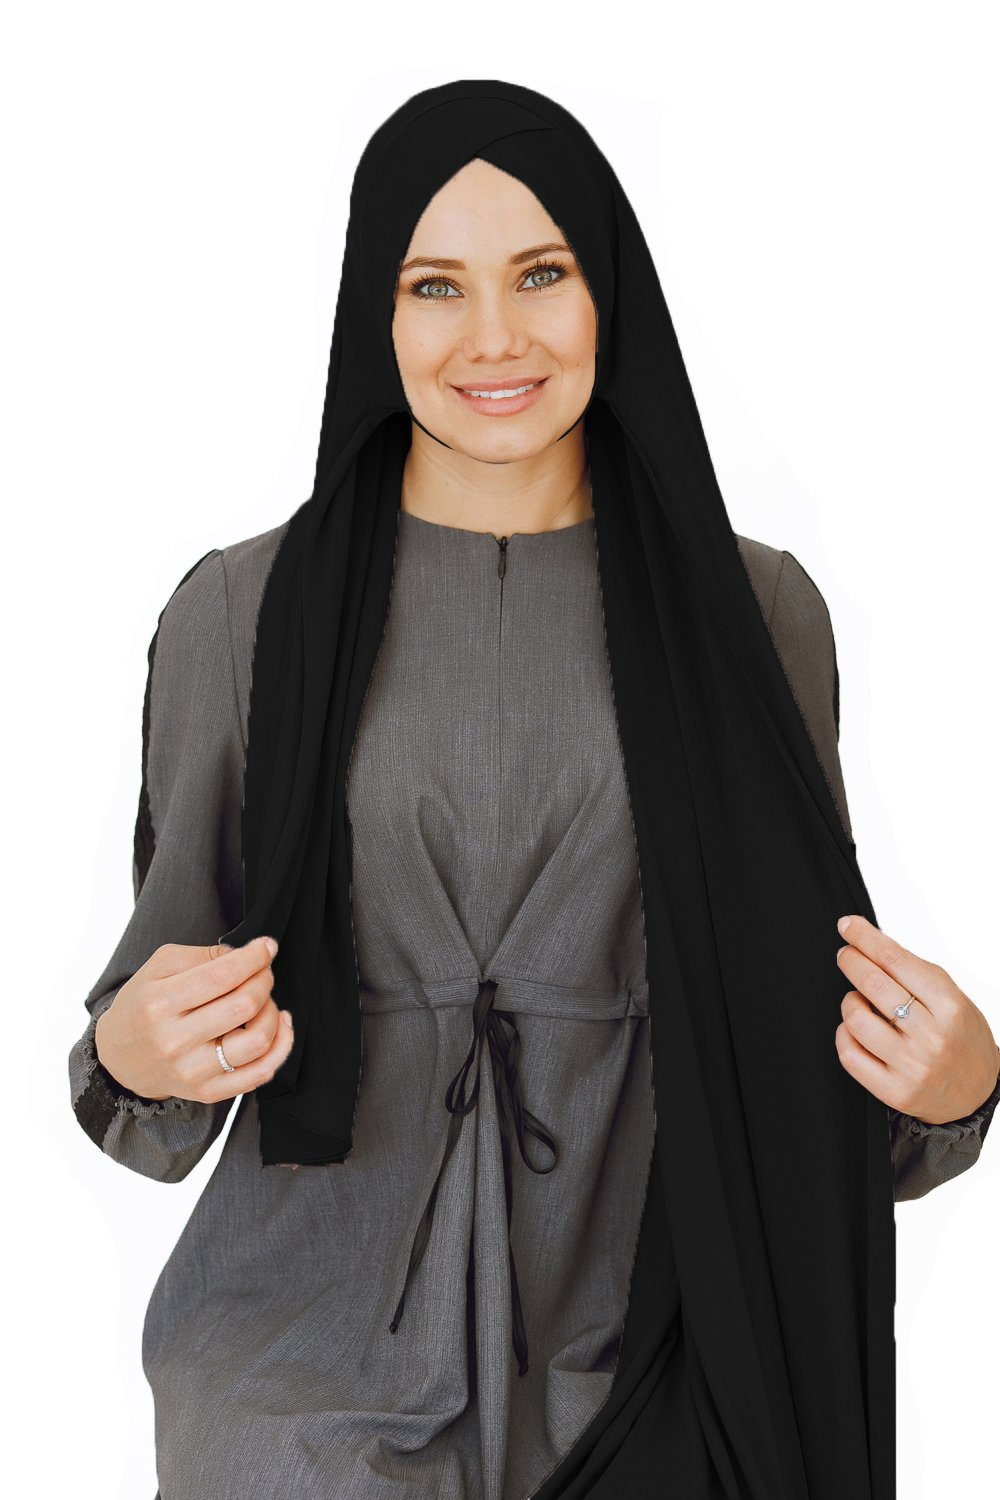 Cotton head scarf, instant black hijab, ready to wear muslim accessories for women (Black) by VeilWear (Image #4)